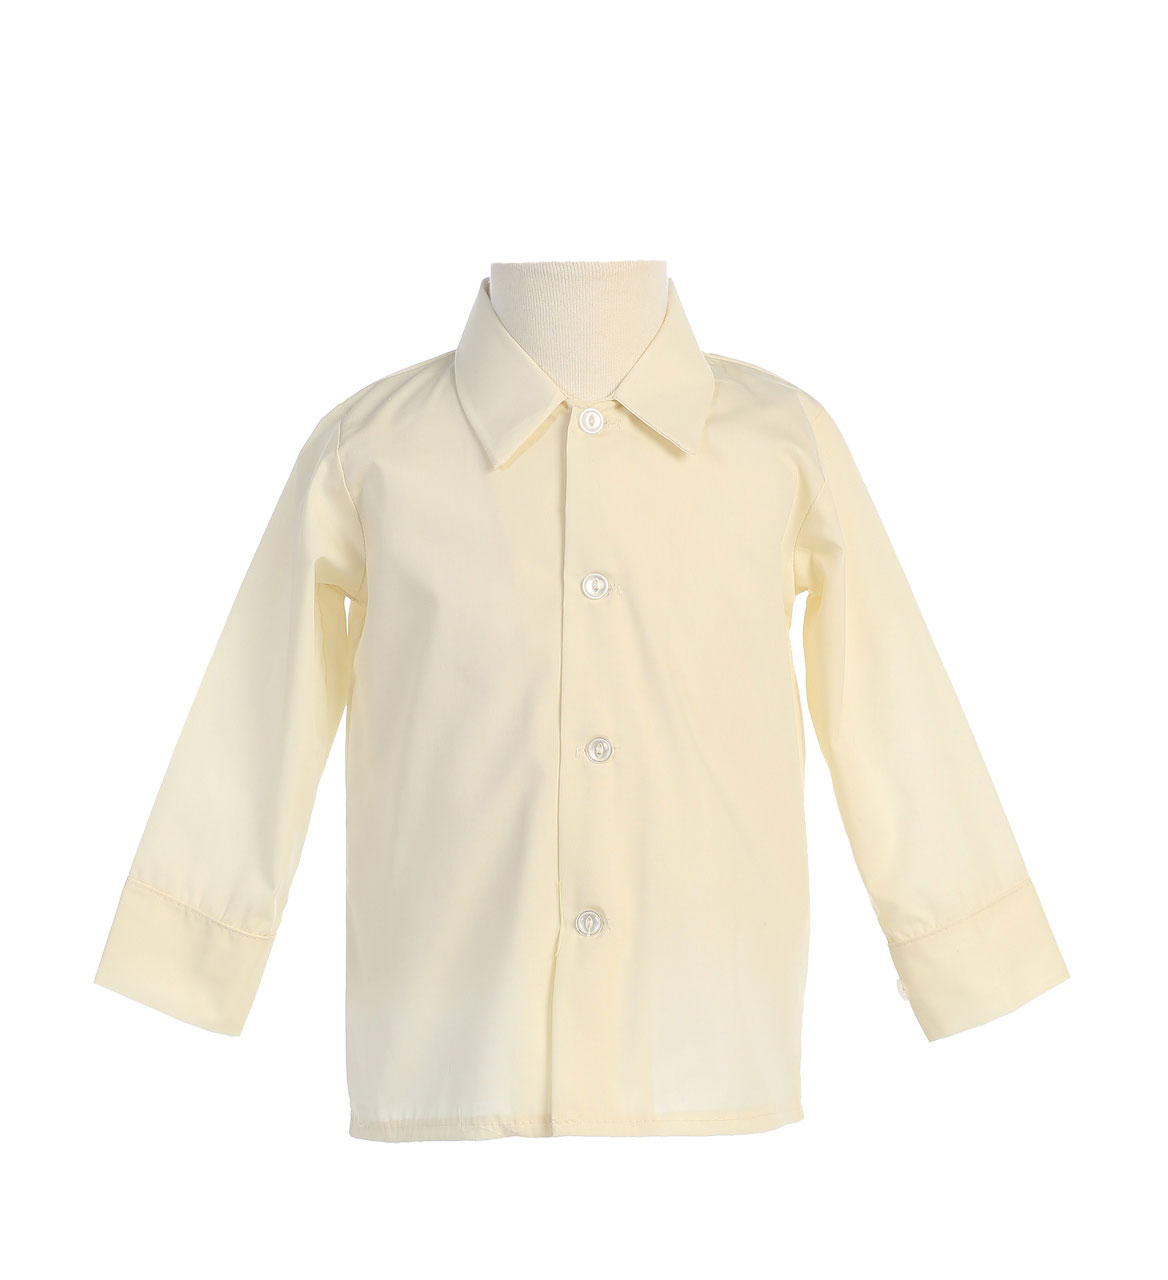 Boys Long Sleeved Simple Dress Shirt - Available in White or Ivory